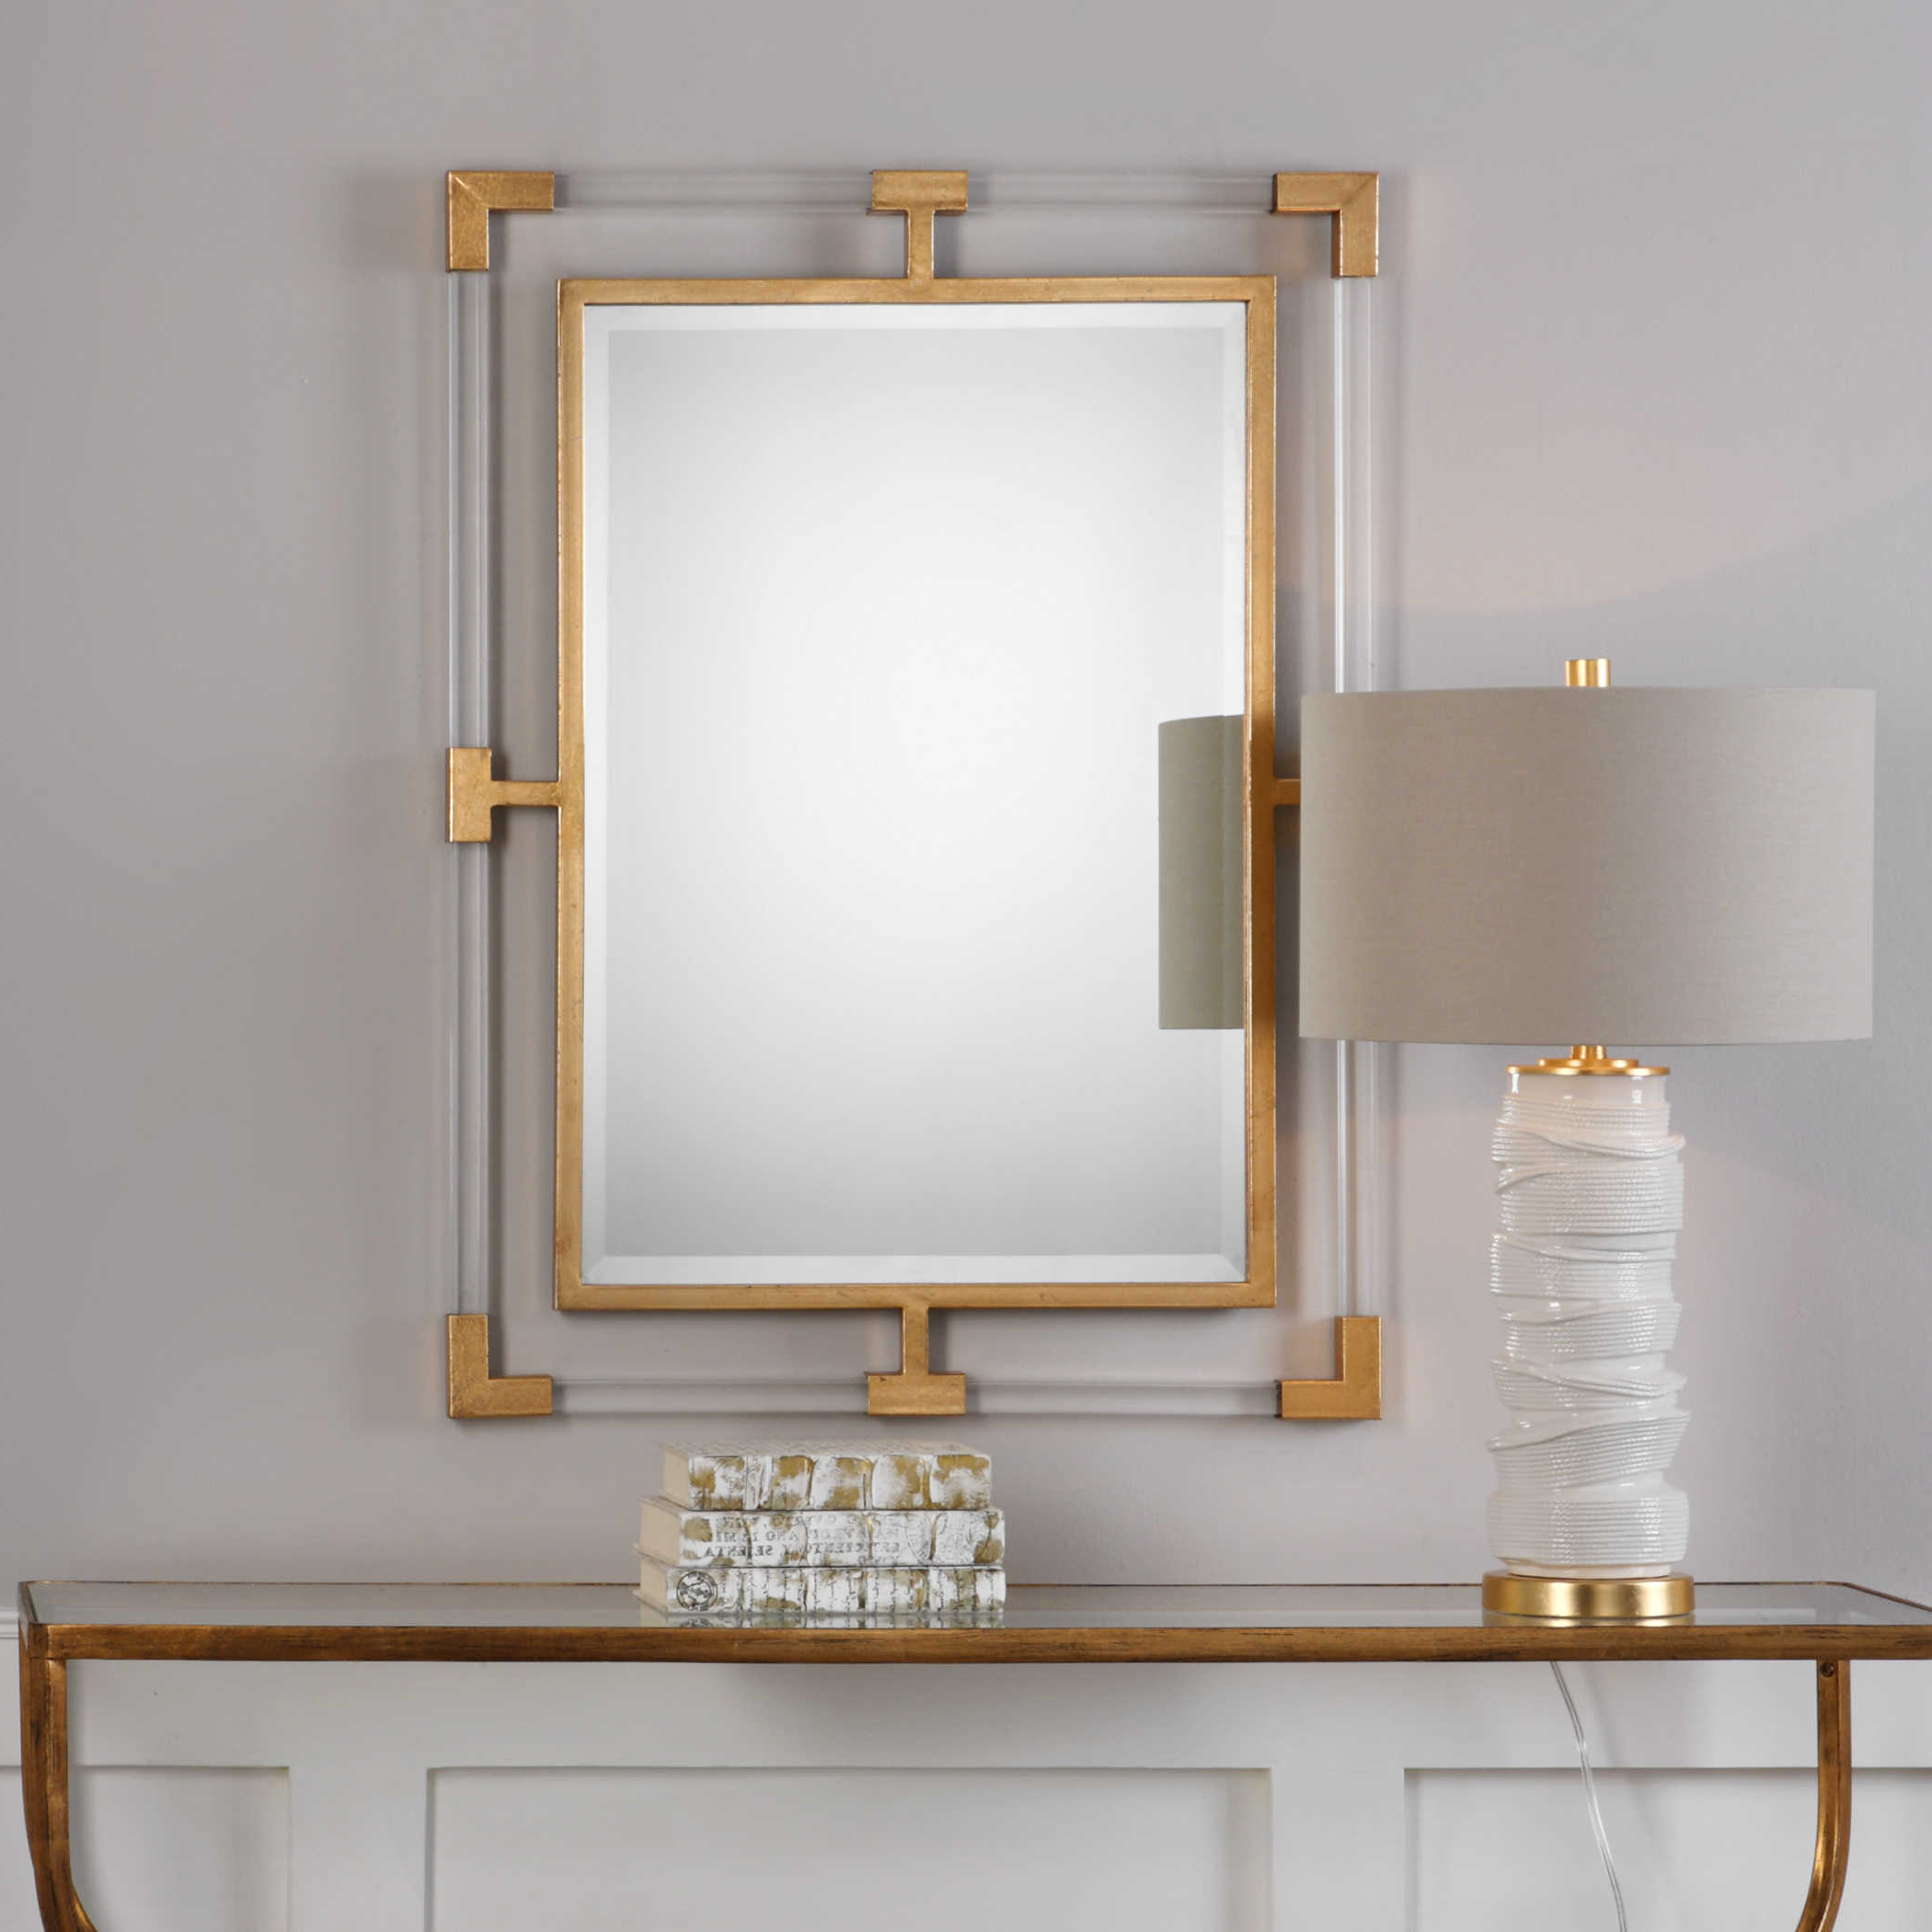 Uttermost Balkan Modern Gold Wall Mirror For Most Popular Uttermost Wall Mirrors (View 13 of 20)